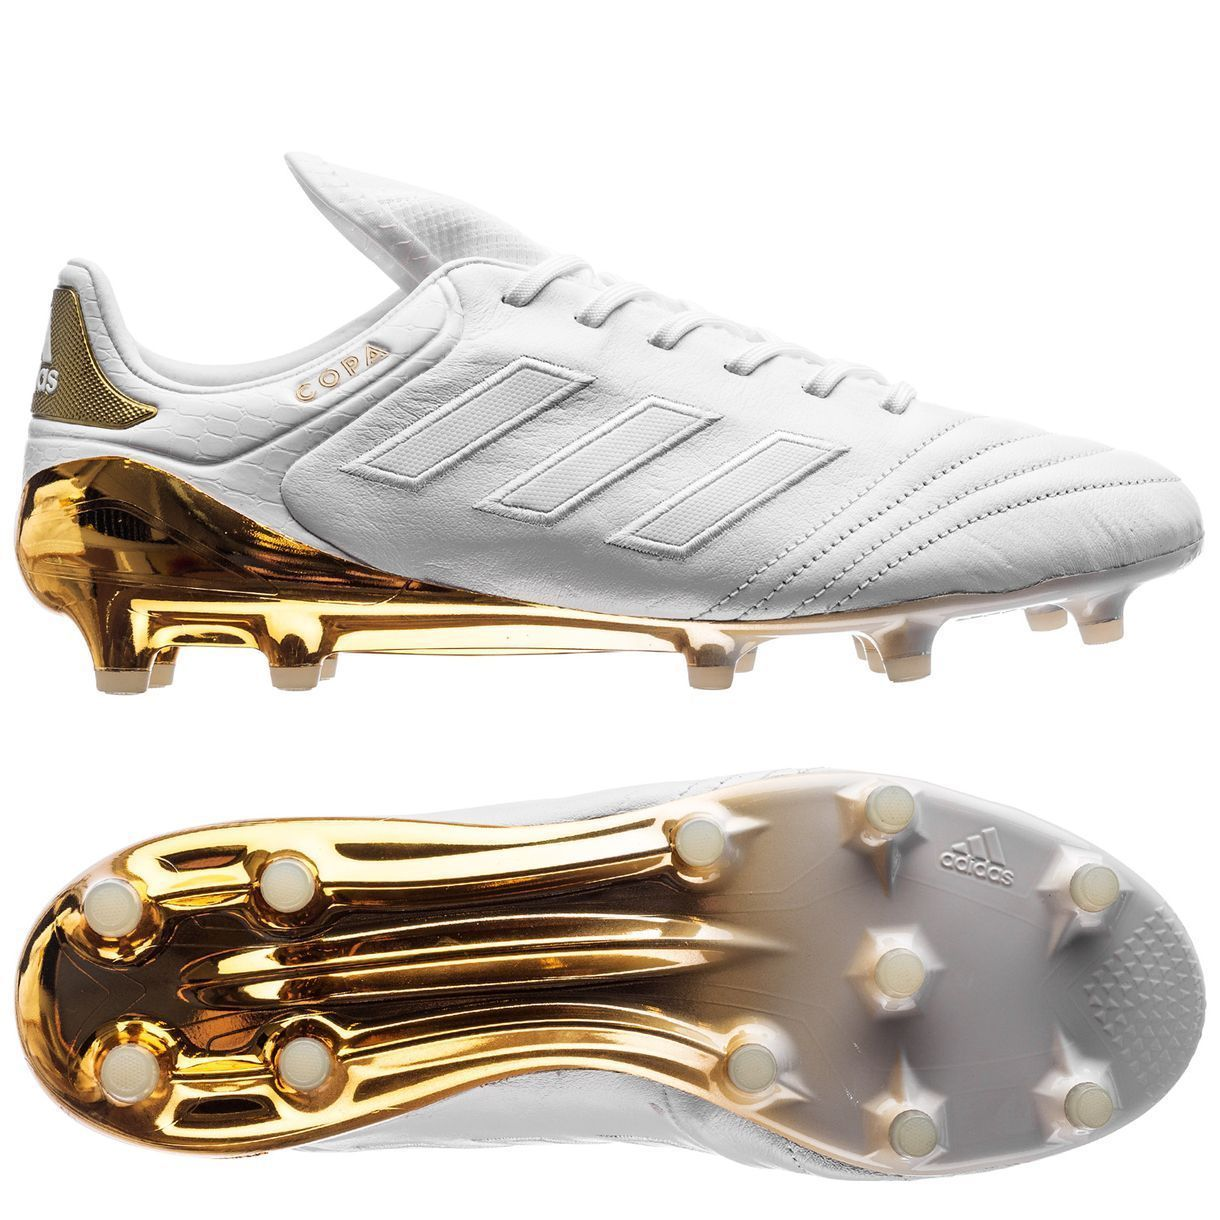 Adidas Copa 17 1 Fg White Football Boots Uk 9 5 44 Mundial Predator World Cup View More On The Link White Football Boots Football Boots Uk Football Boots